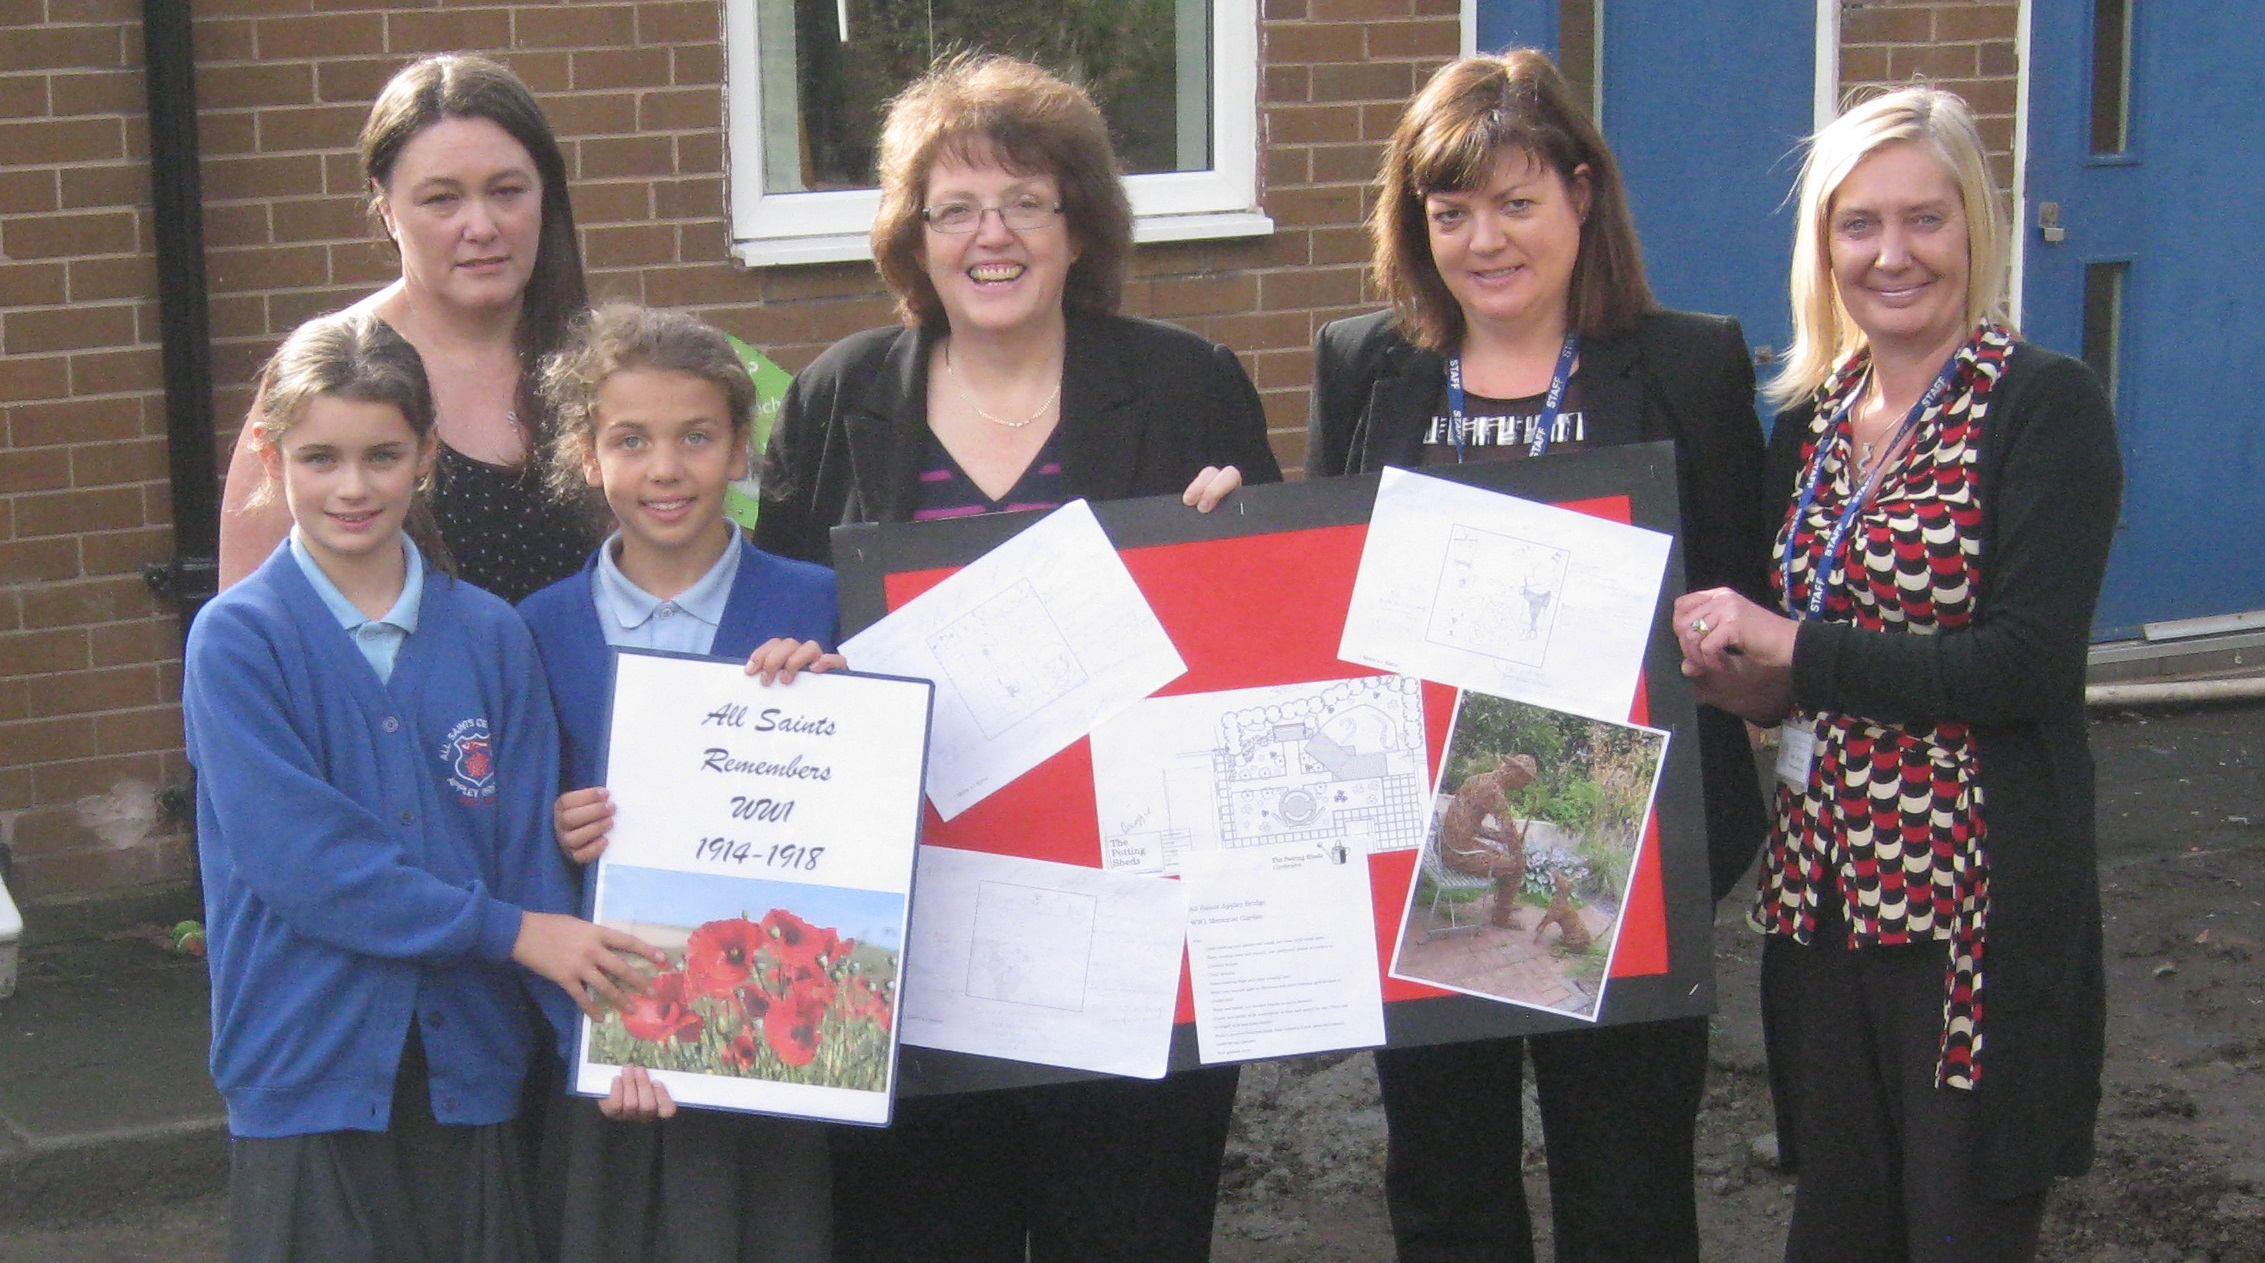 Rosie_Cooper_MP_with_Mrs_Jayne_Hutchings__Mrs_Janet_Dunn__Mrs_Jane_Bimson_and_Yr_6_pupils_Grace_and_Matilda.jpg